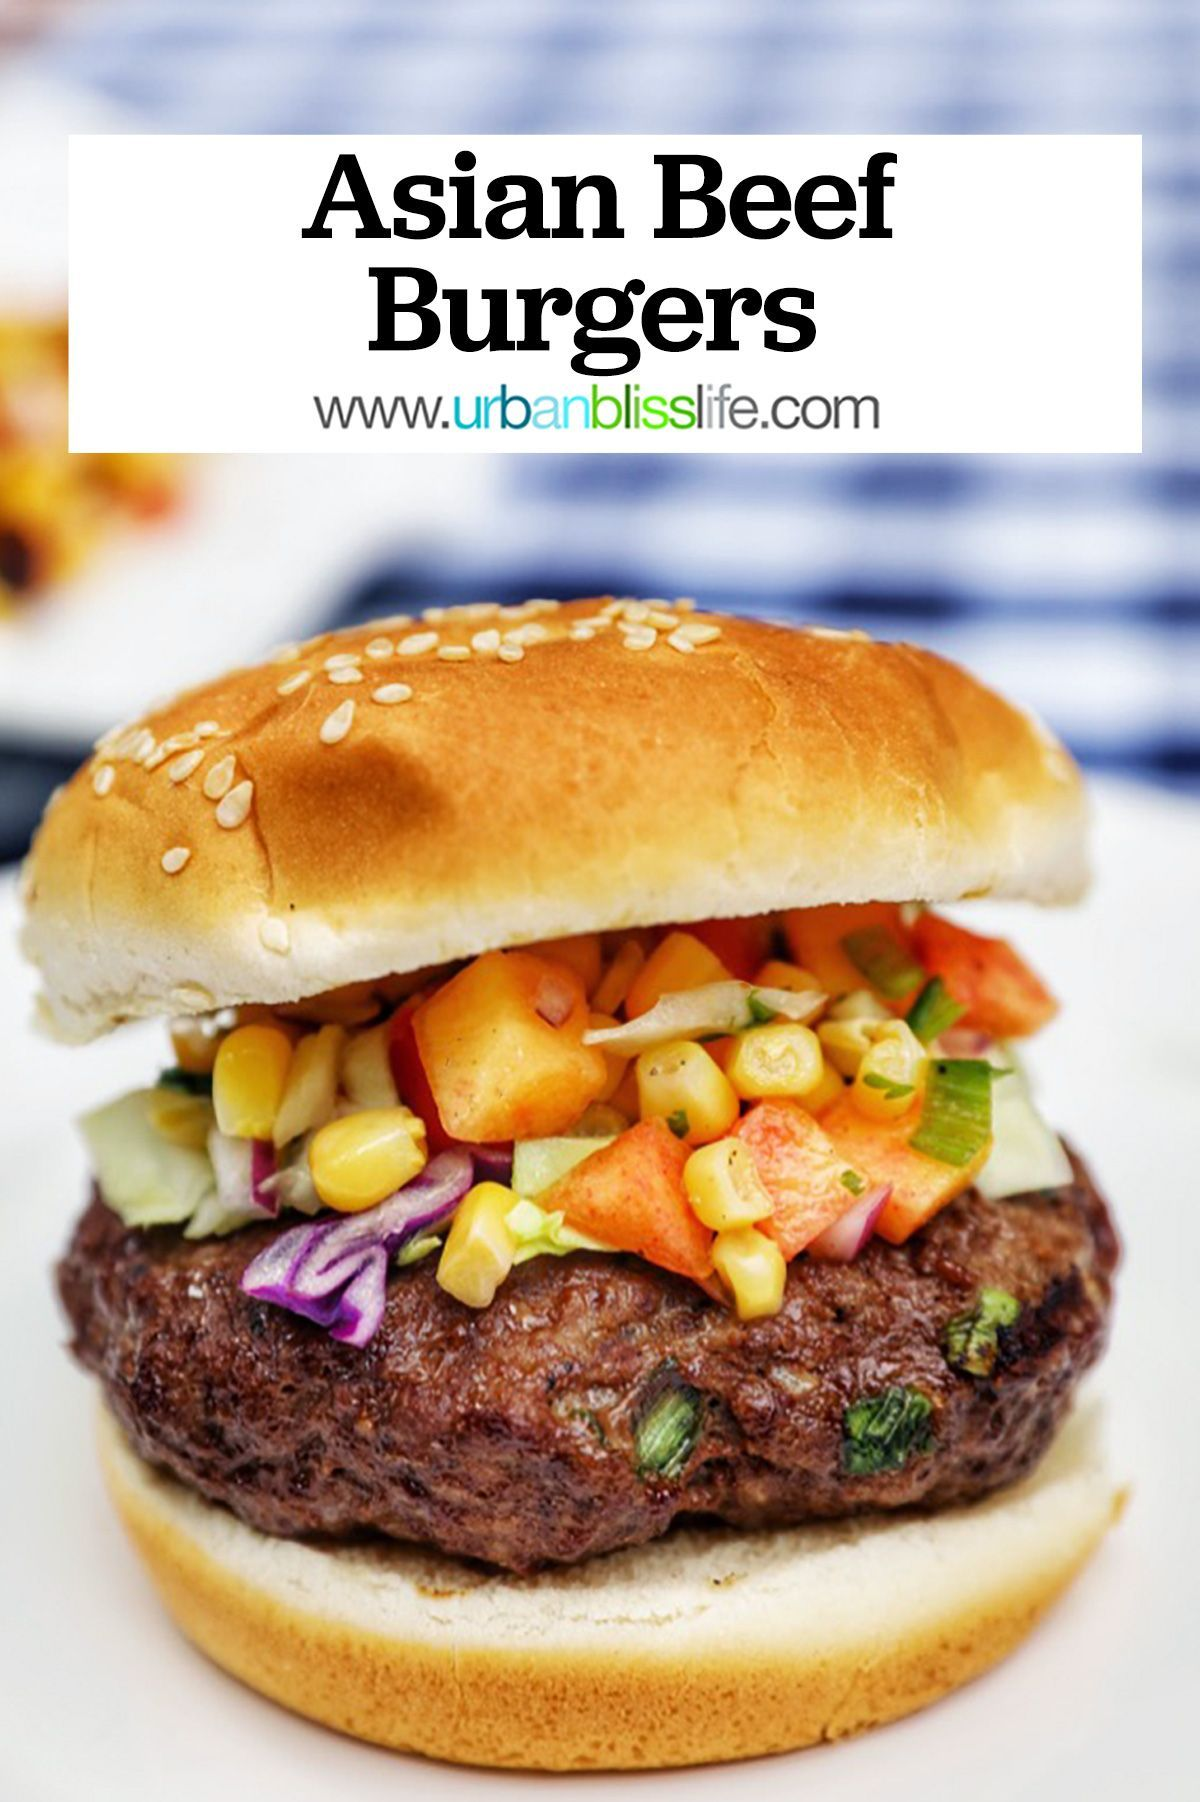 Asian Beef Burgers Recipe In 2020 Asian Beef Beef Burgers Healthy Beef Recipes